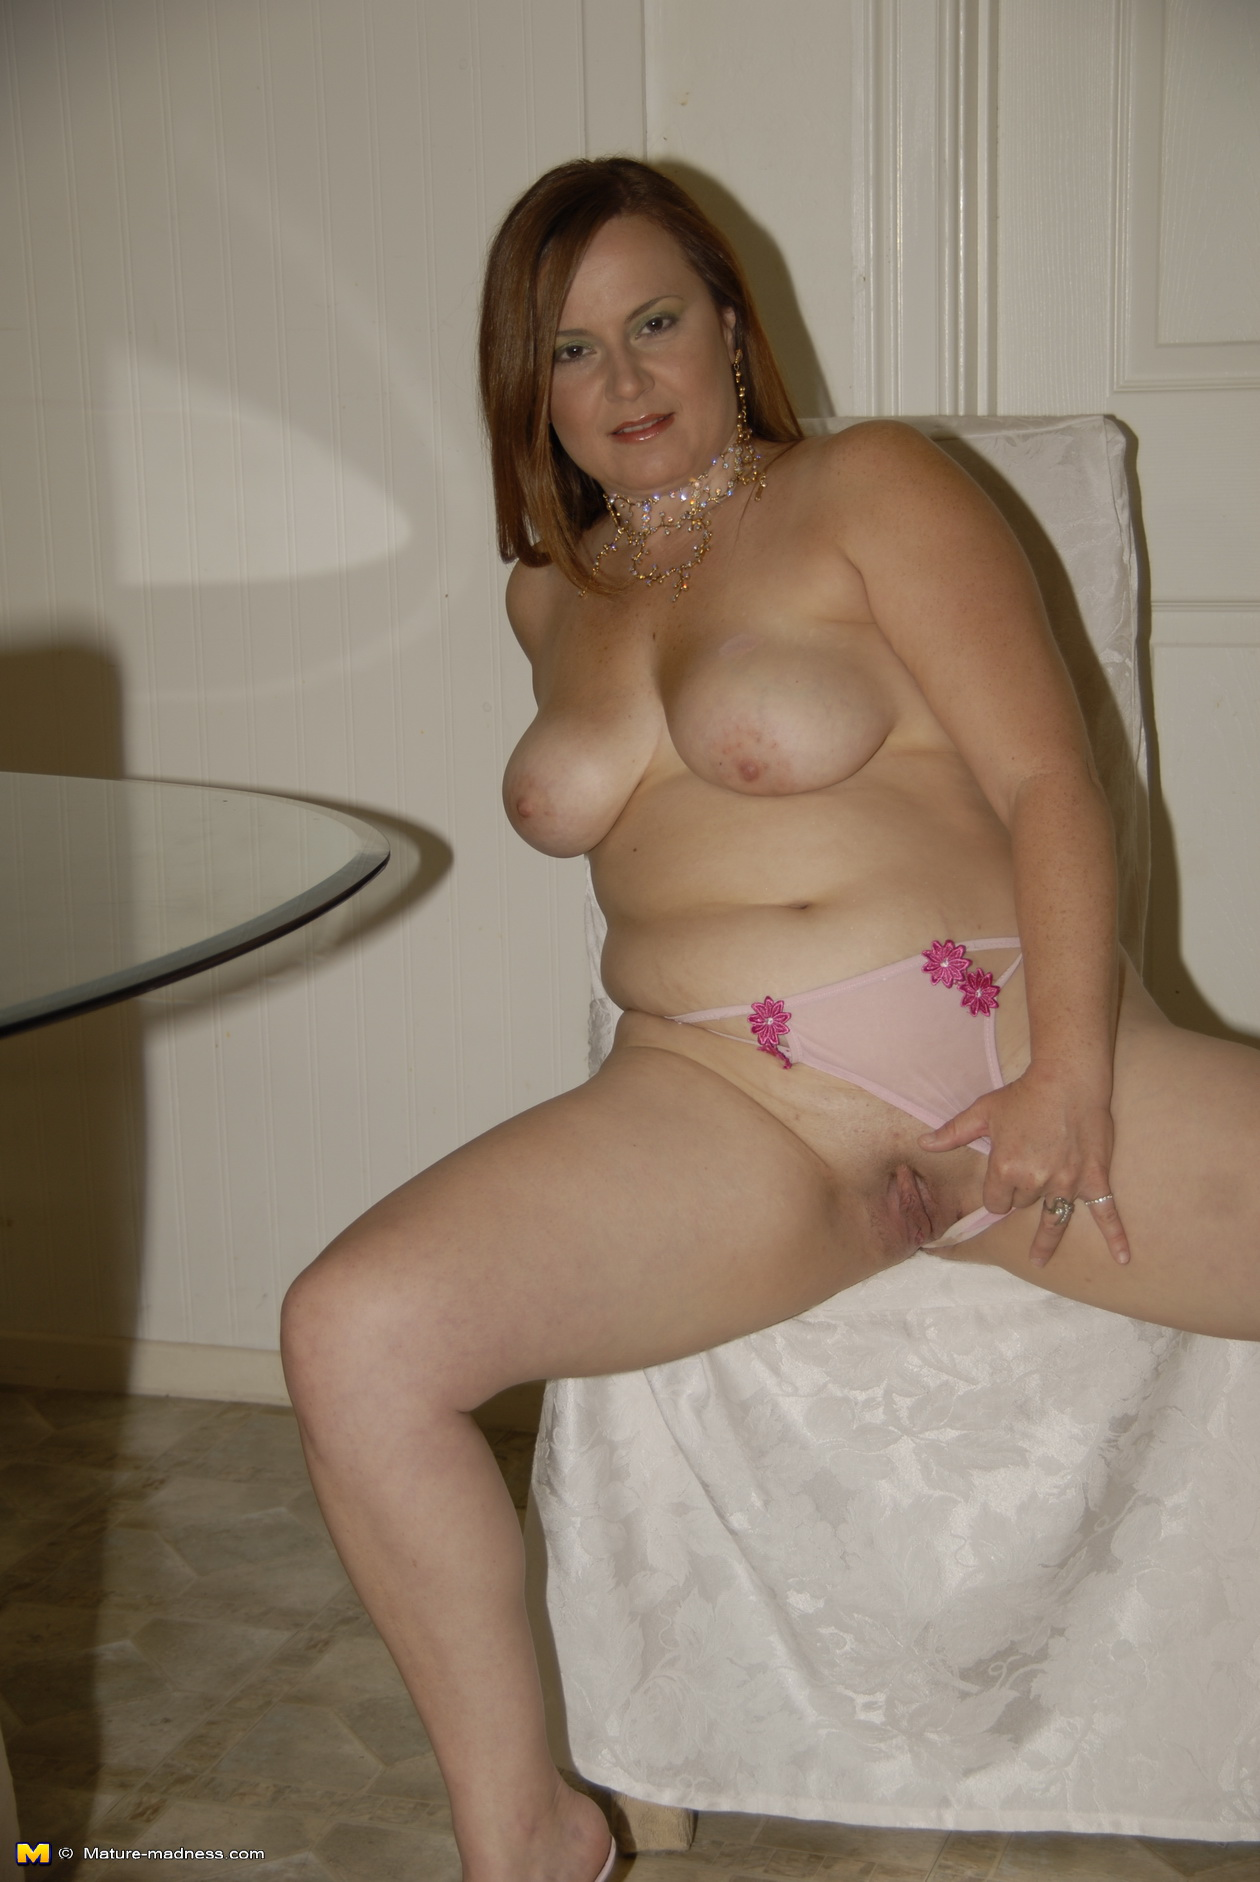 Excellent idea slut getting fucked and fisted frankly